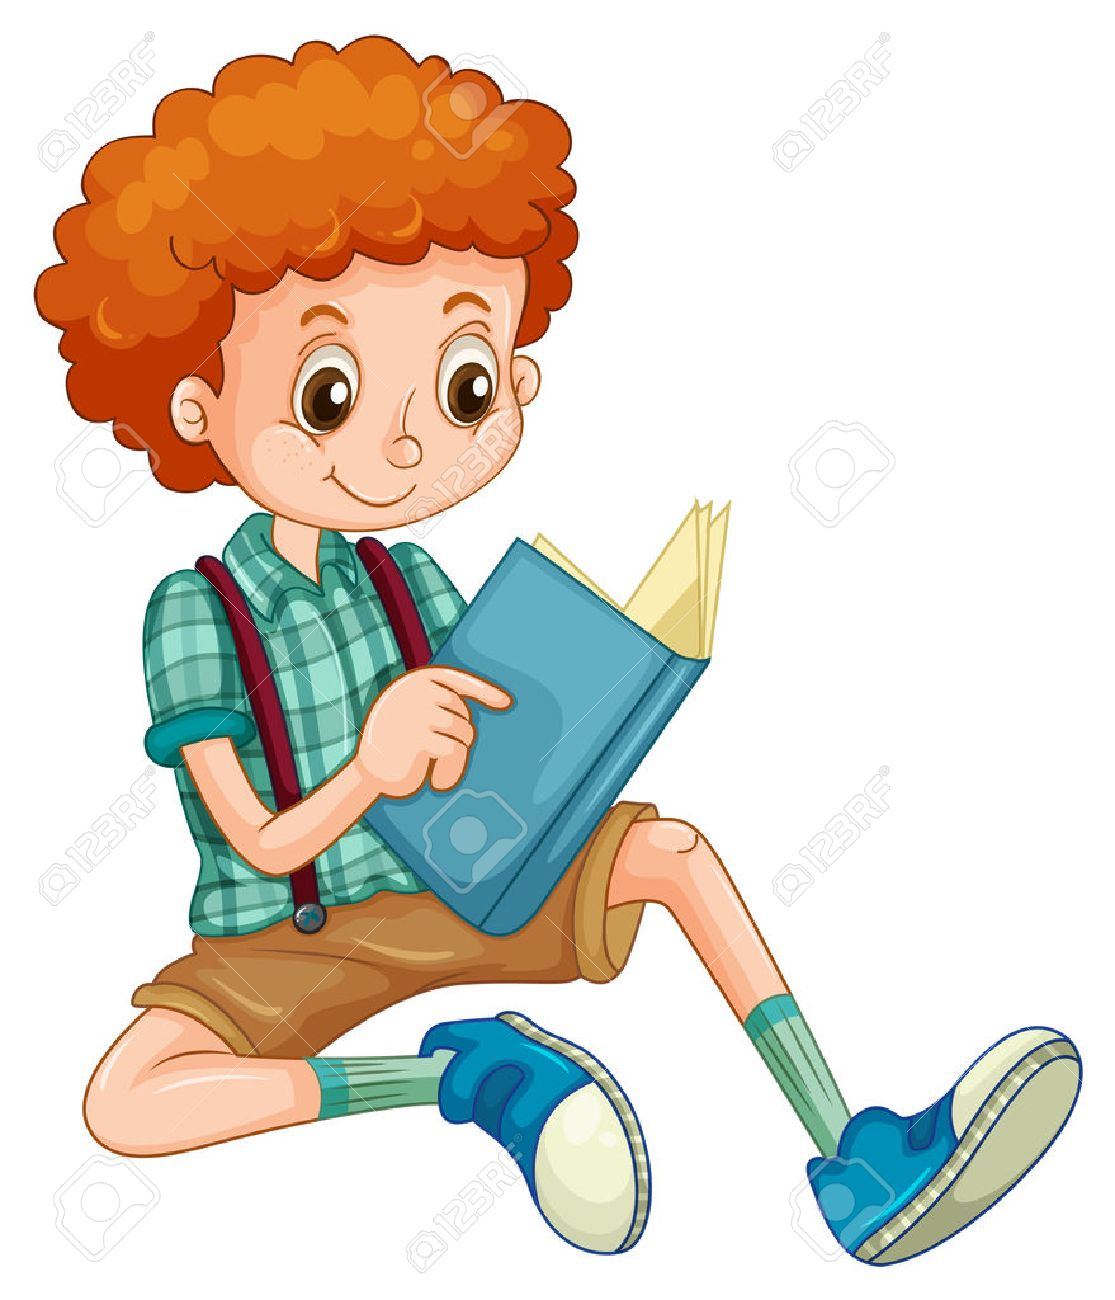 Boy with red curly hair reading a book.